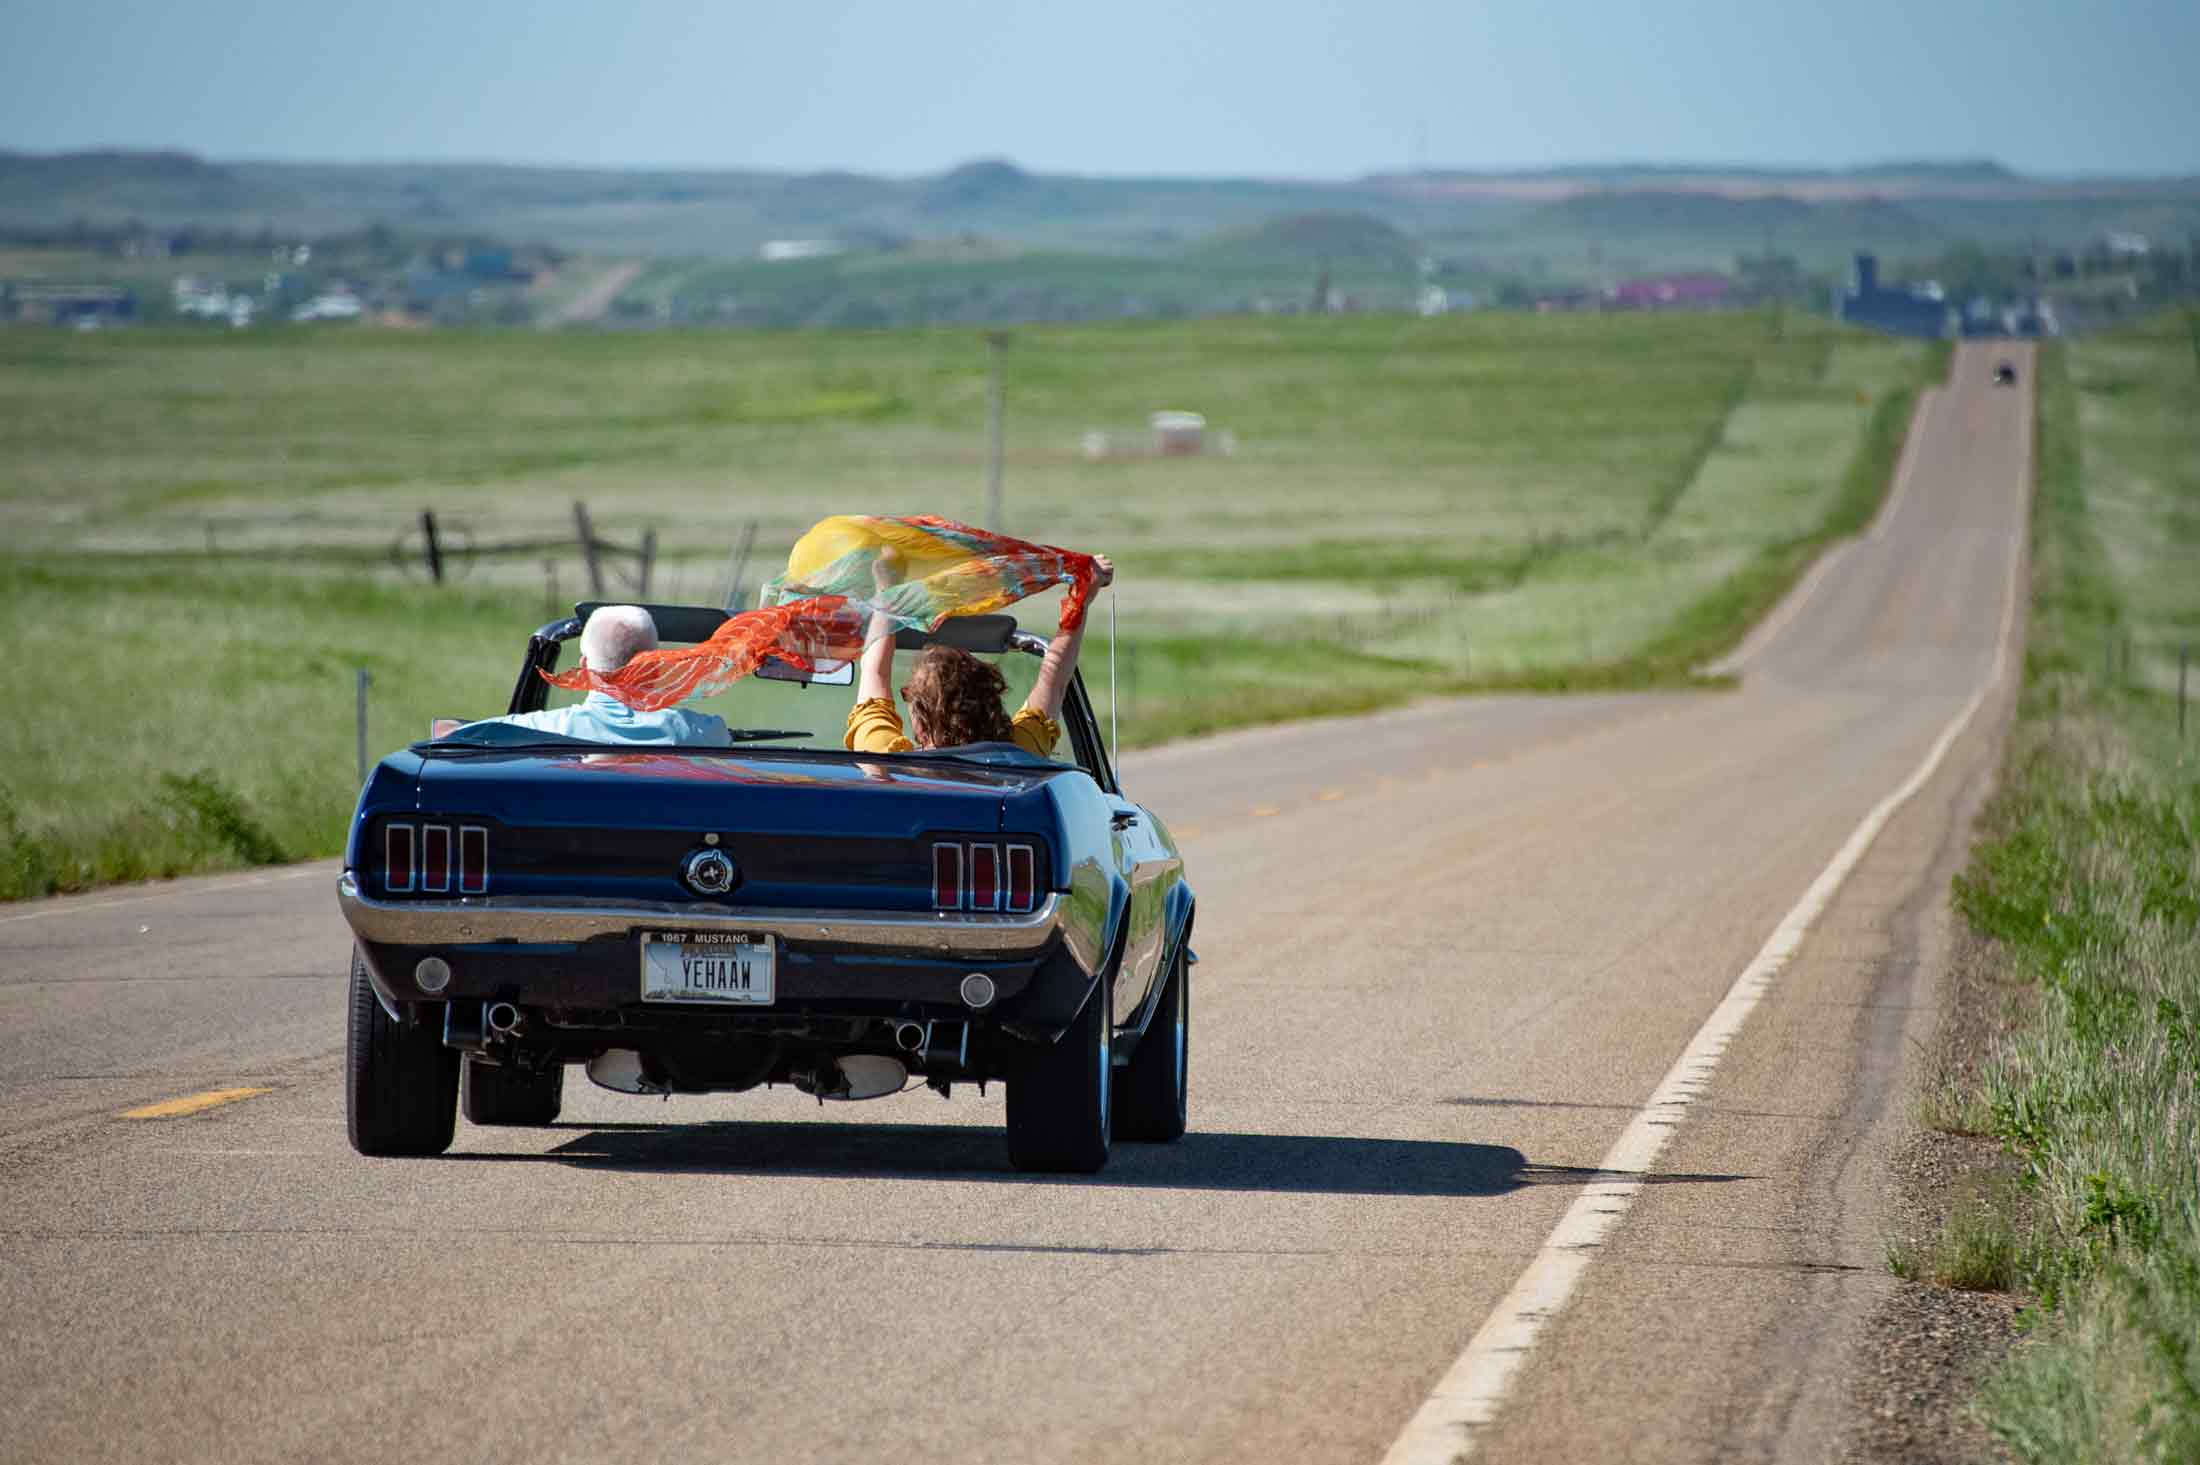 Wild, Wacky and Wonderful: A Road Trip Through Southeast Montana